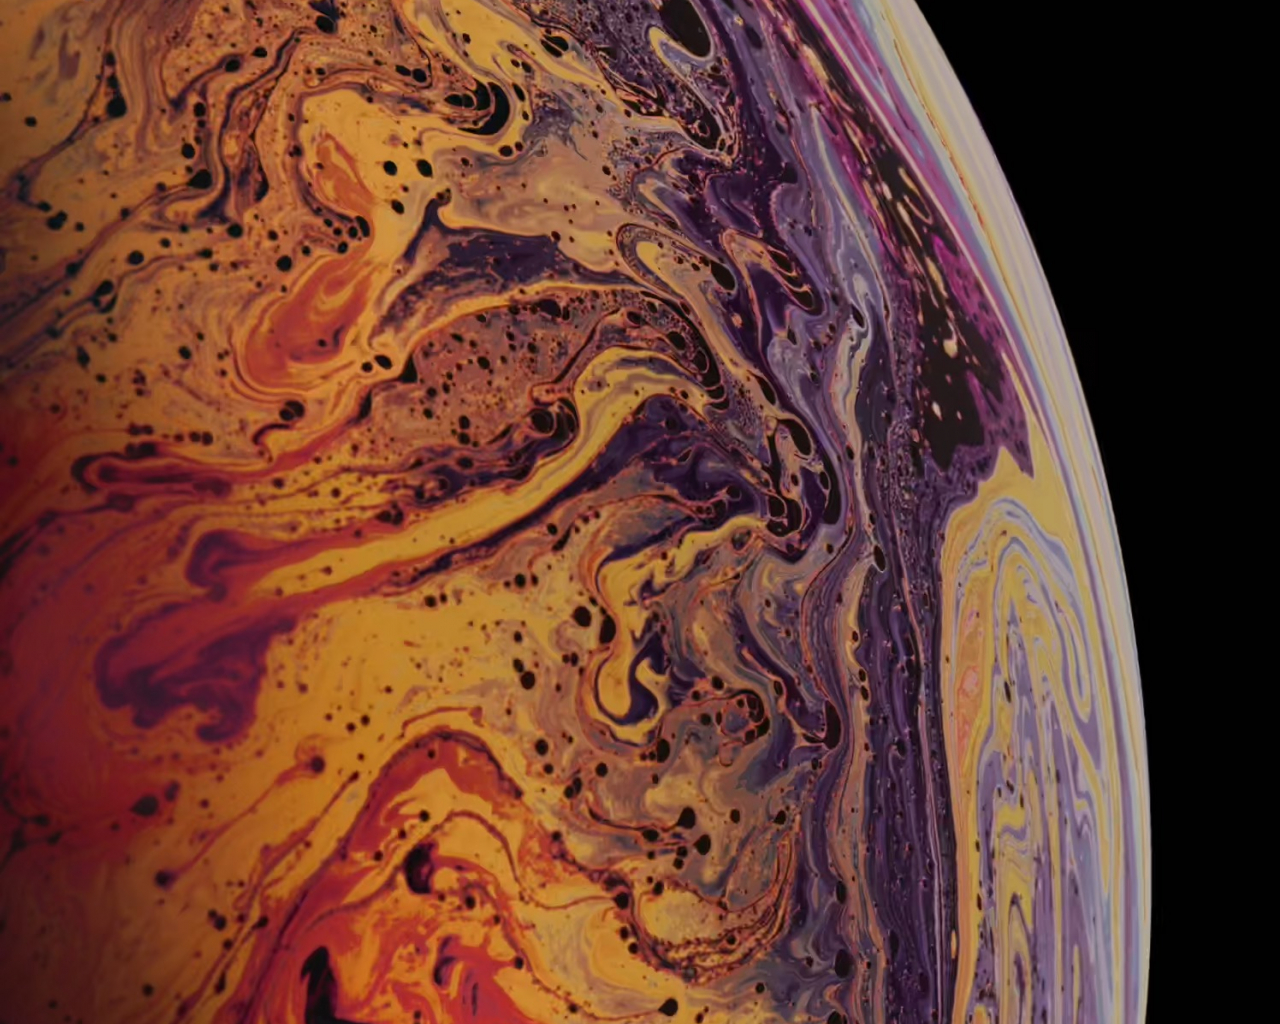 Free Download Download The 3 Iphone Xs Max Wallpapers Of